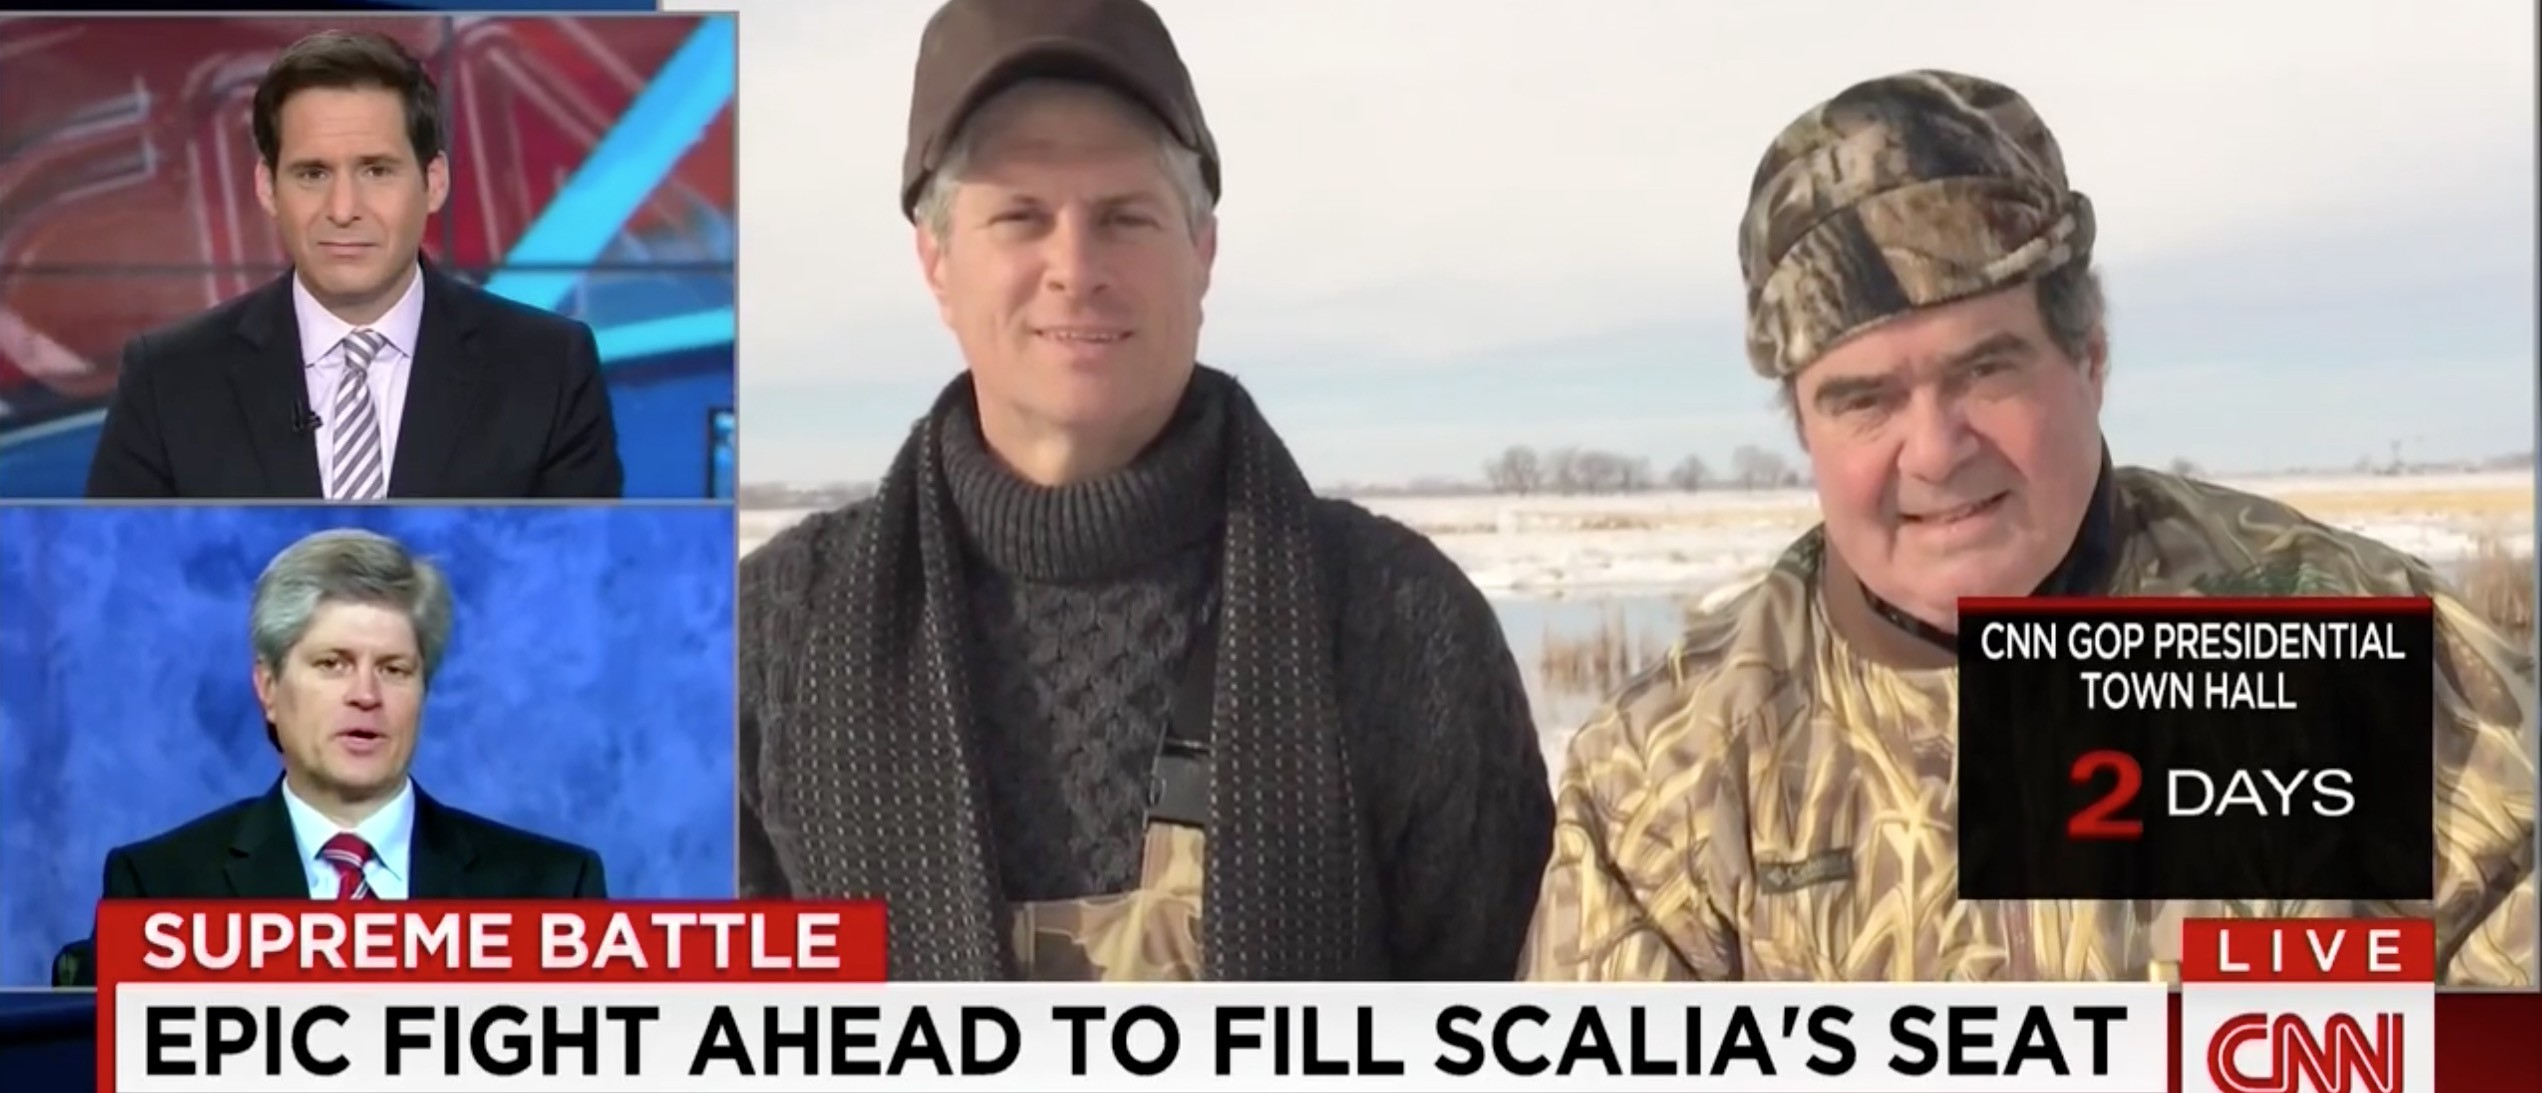 Rep. Jeff Fortenberry, Antonin Scalia, Screen shot CNN